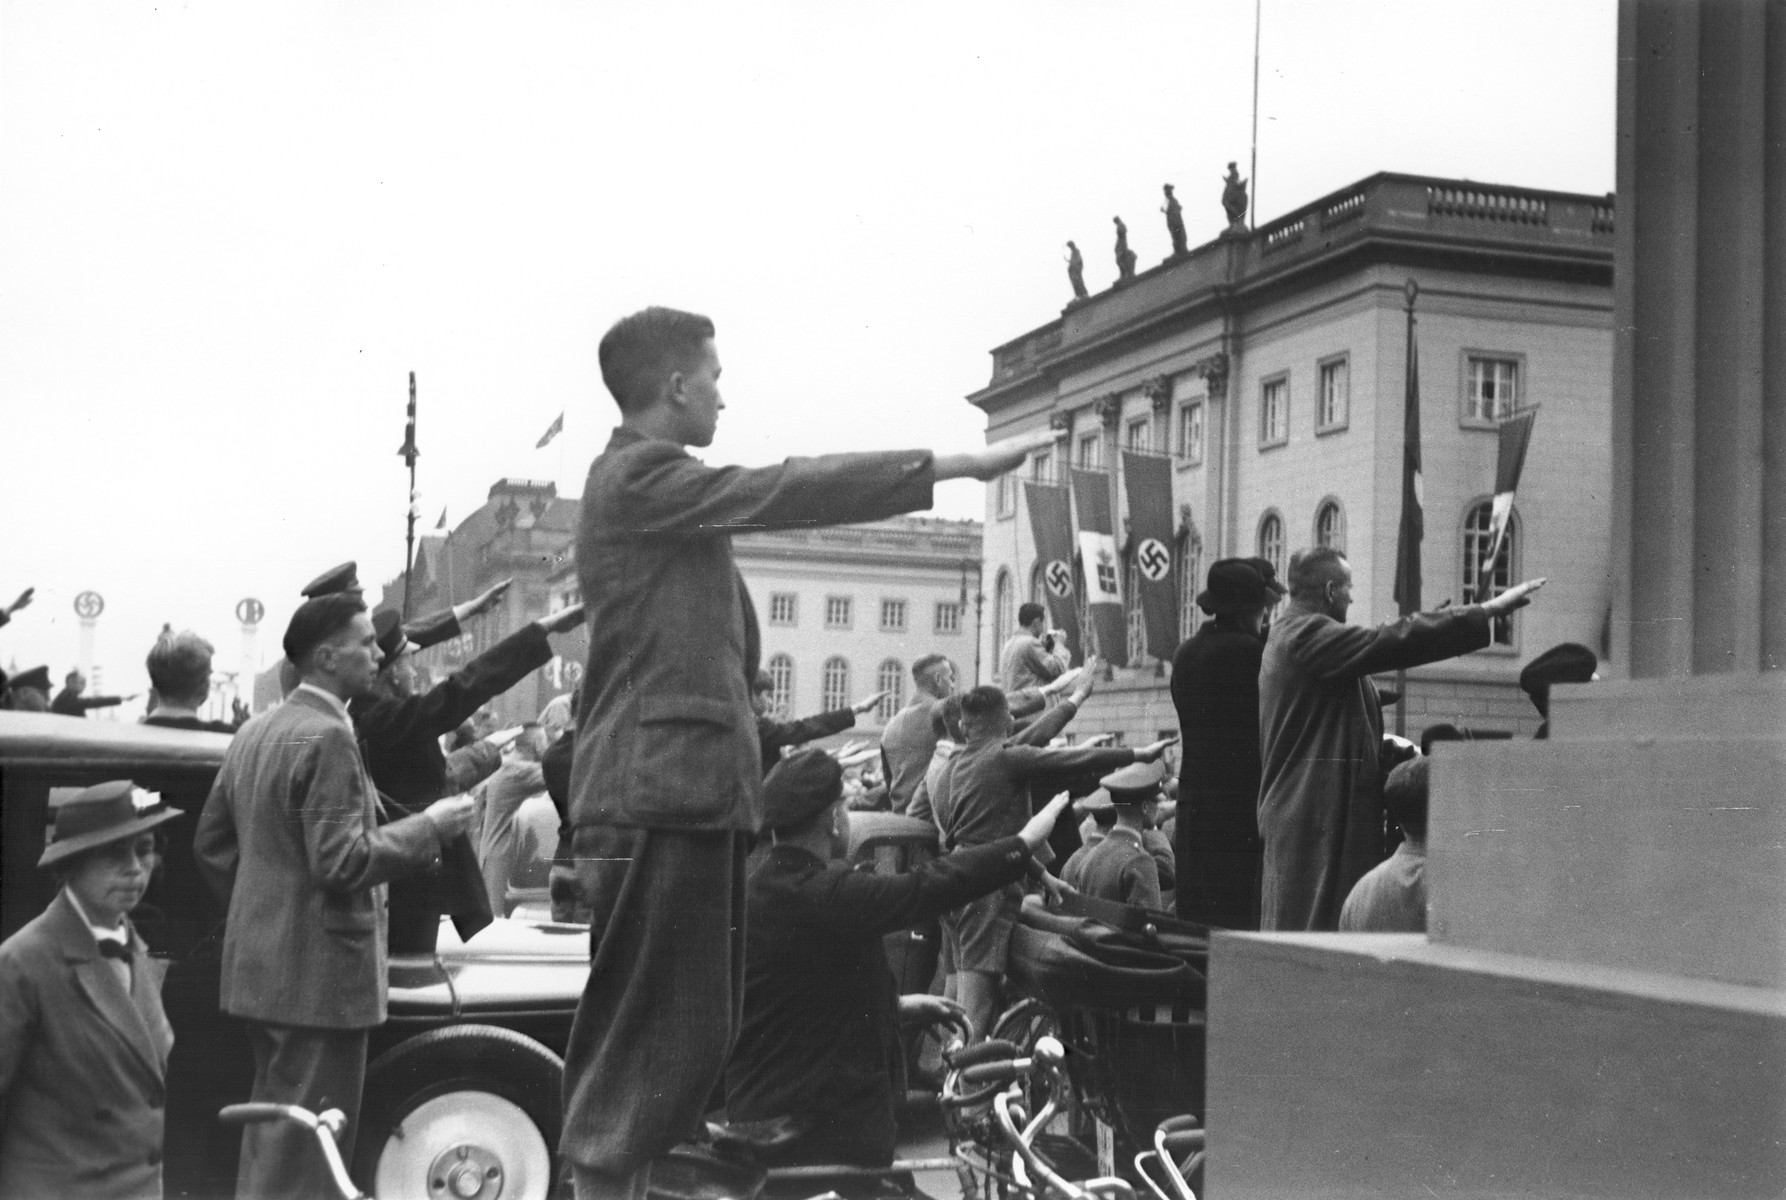 German spectators at a political rally raise their arms in the Nazi salute in Berlin.